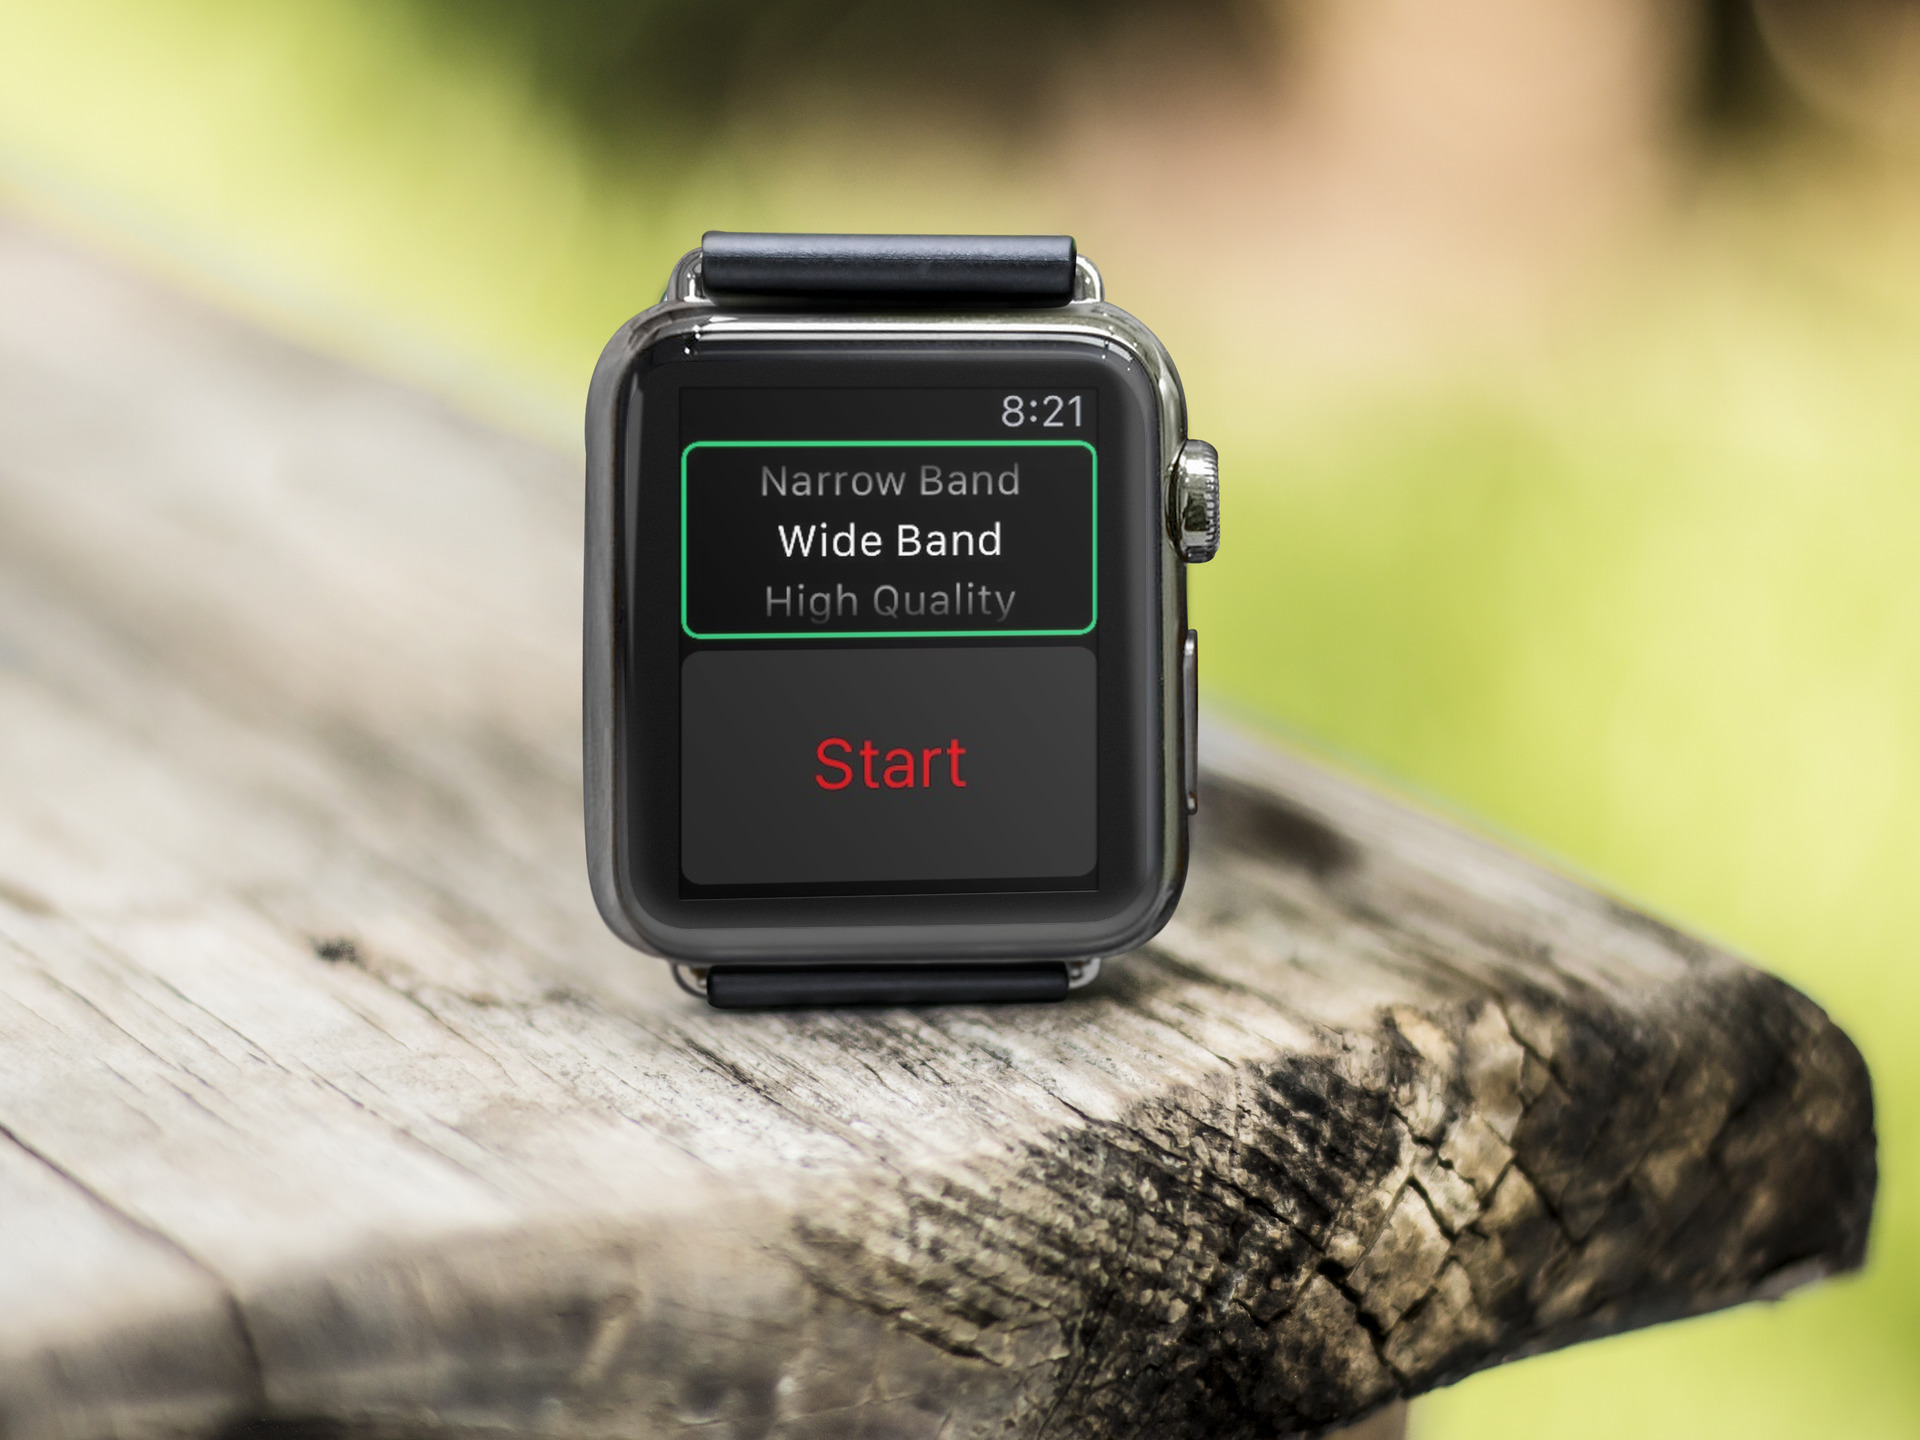 Record important conversations with iReg for Apple Watch